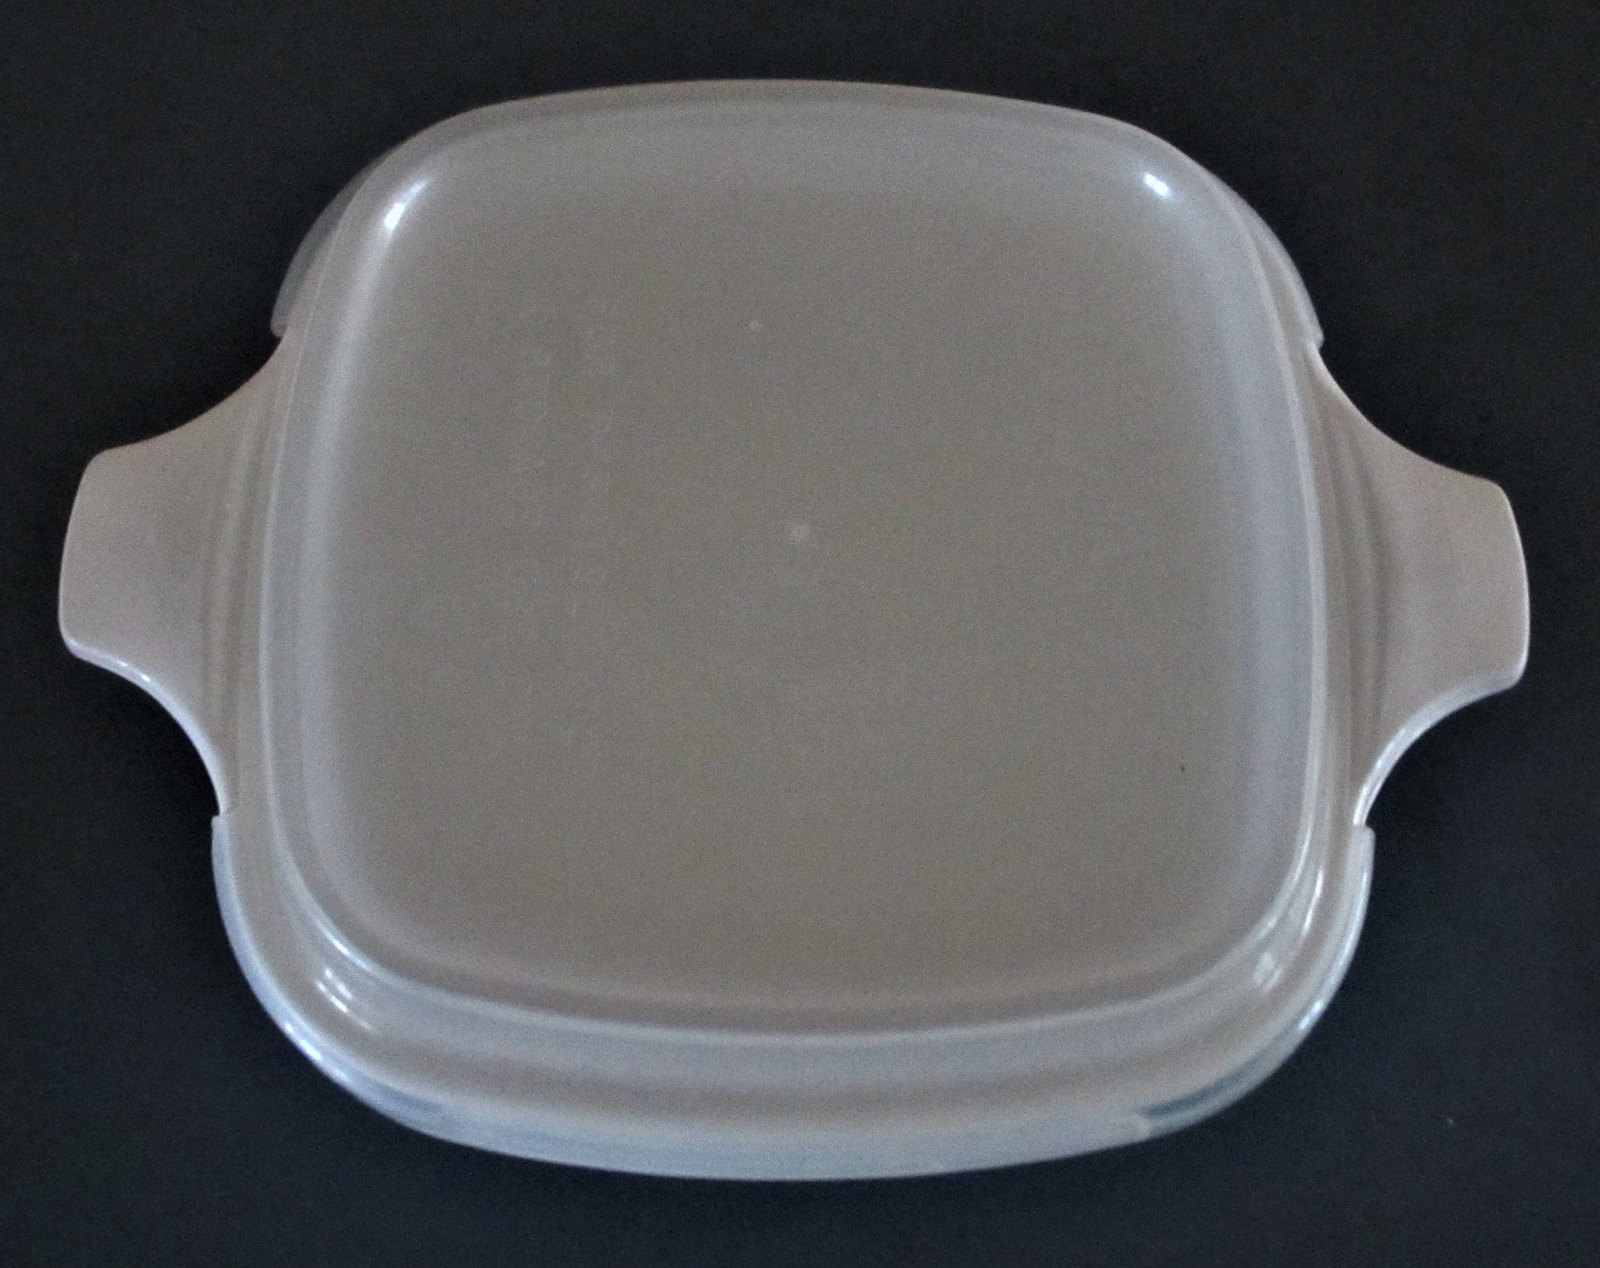 ... Corning Ware 4  square casserole w/ storage lid Spice of Life vintage ... & Corning Ware 4